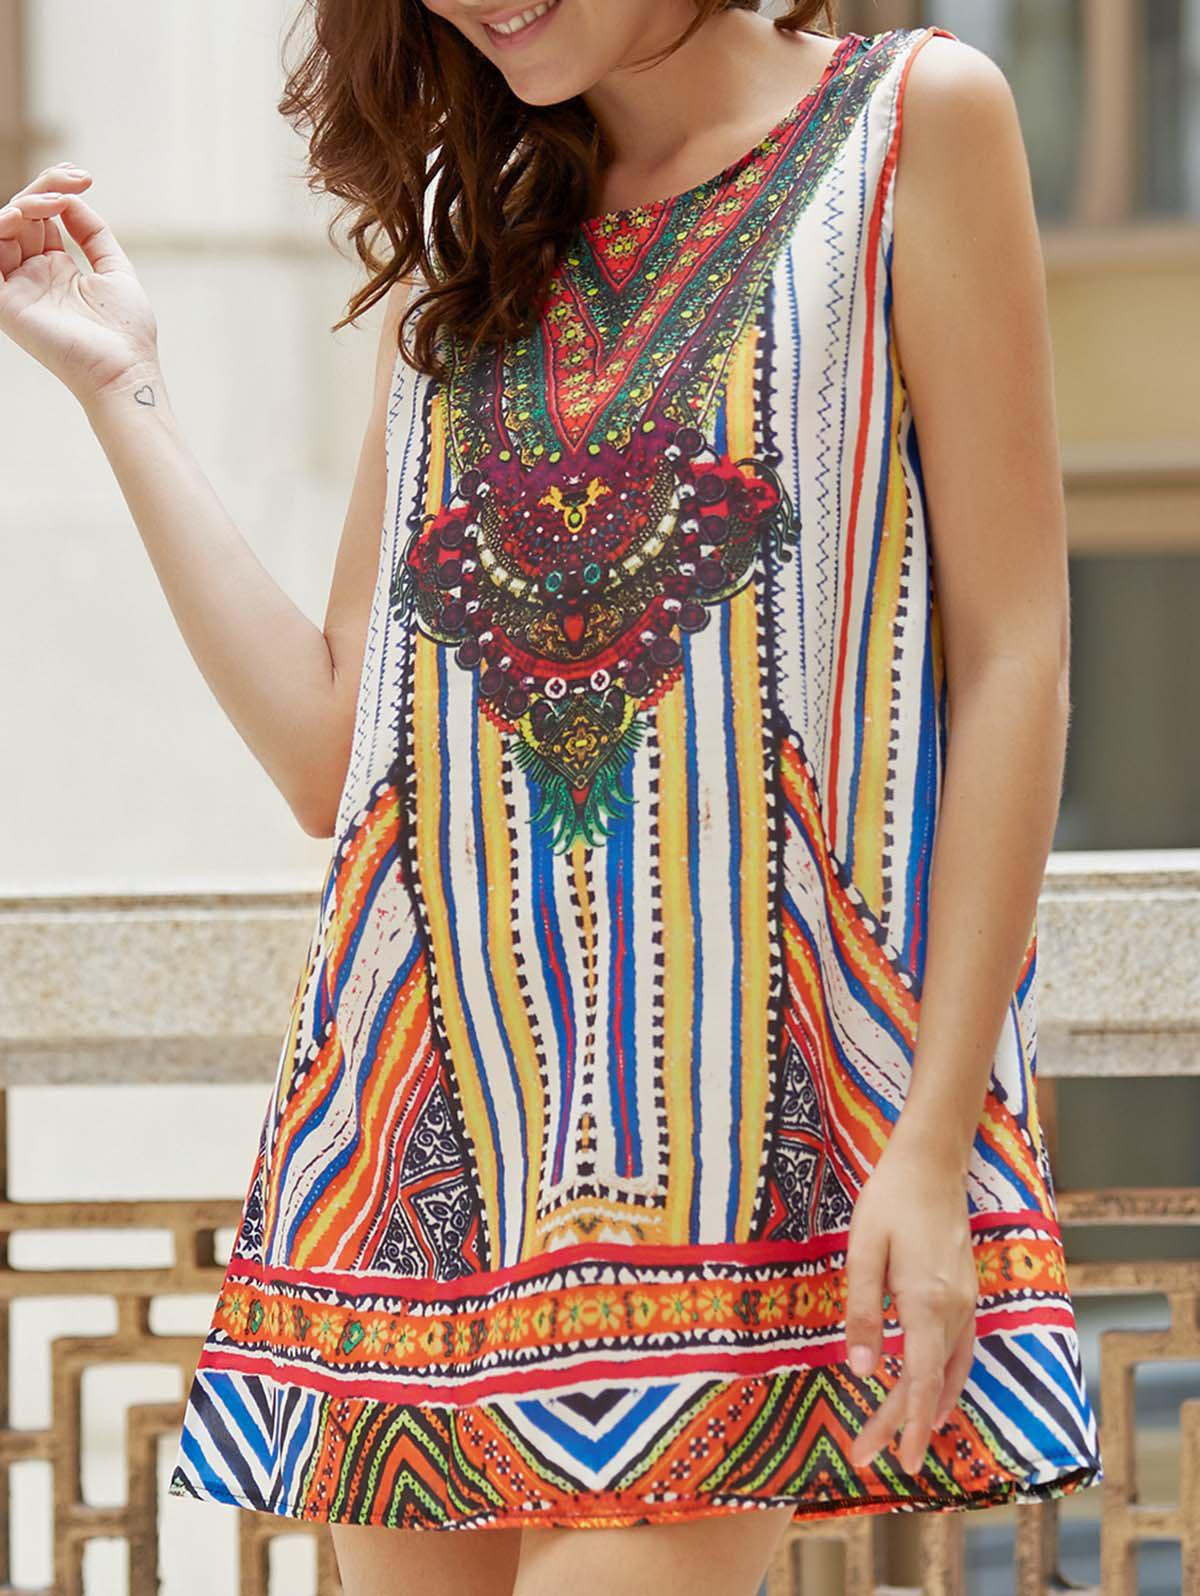 Ethnic Style Sleeveless Colorful Print Tank Top Dress For Women - COLORMIX S